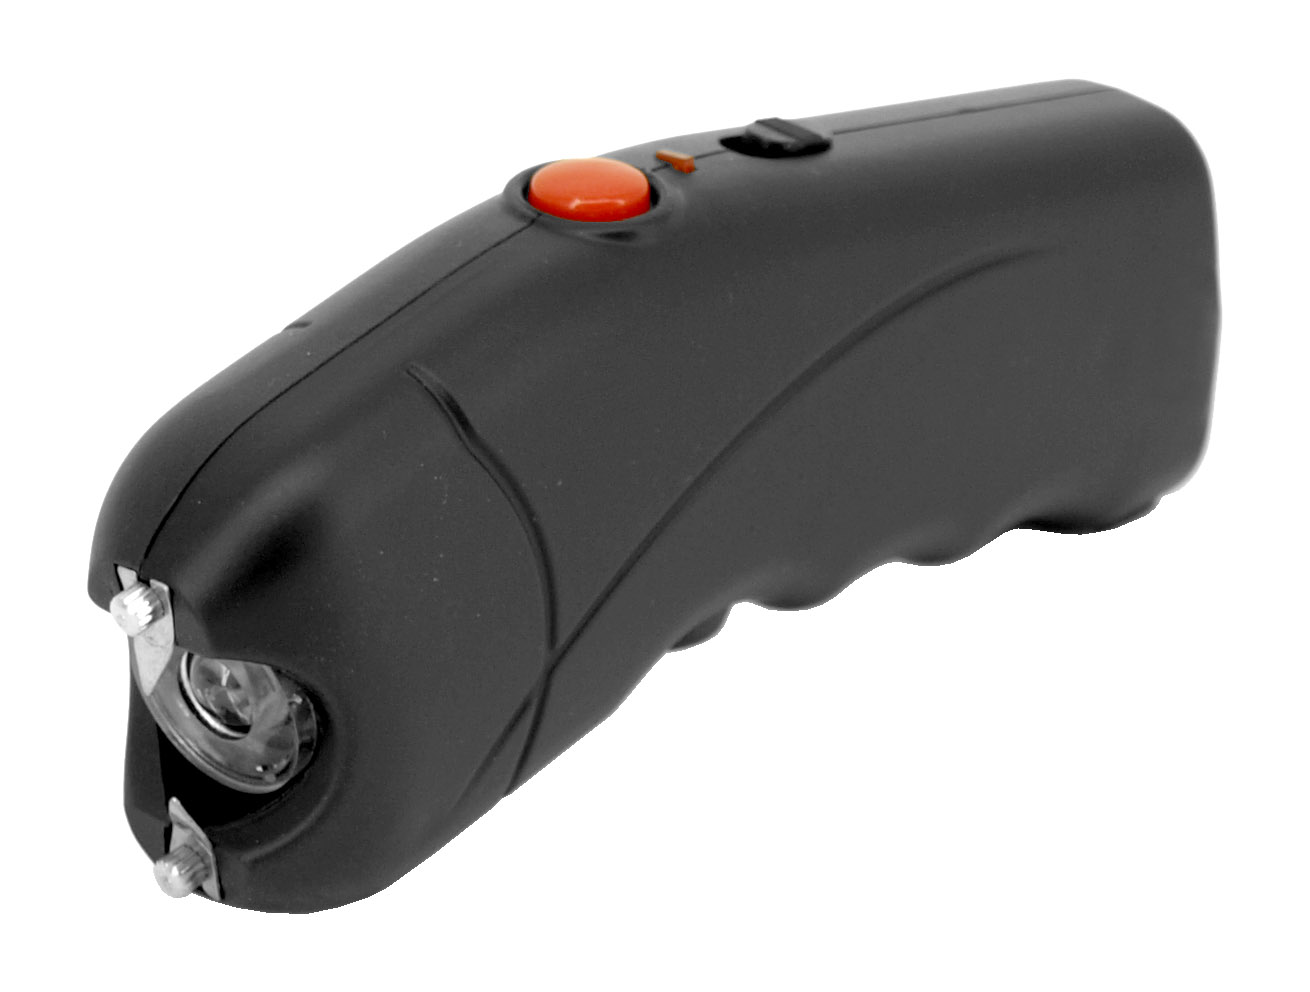 LED Flashlight Stun Gun - Black